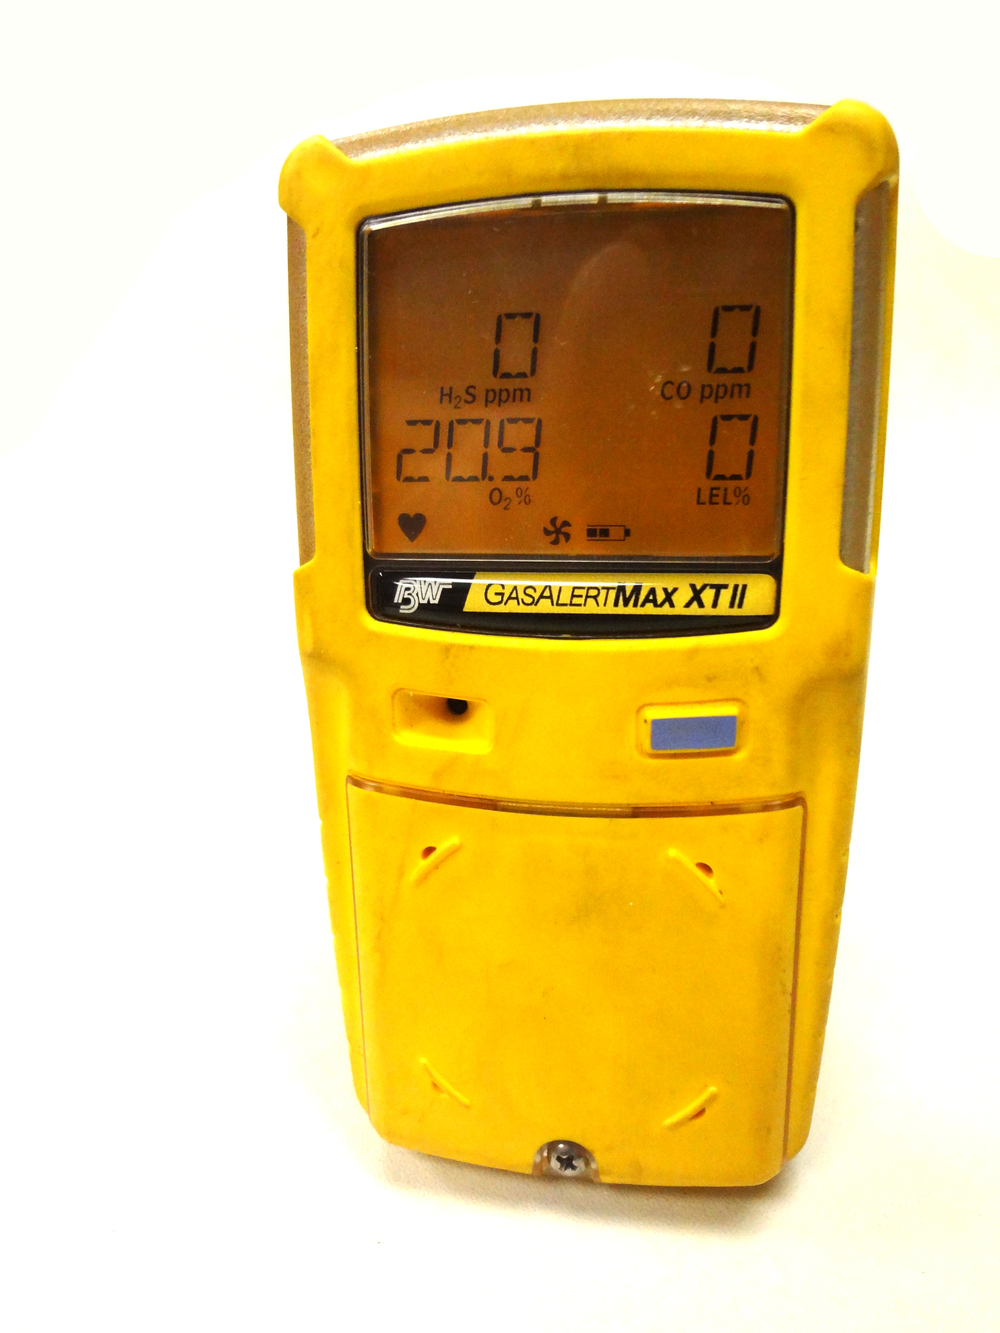 BW-Technologies-Gas-Alert-Max-XT-II-O2-good.JPG